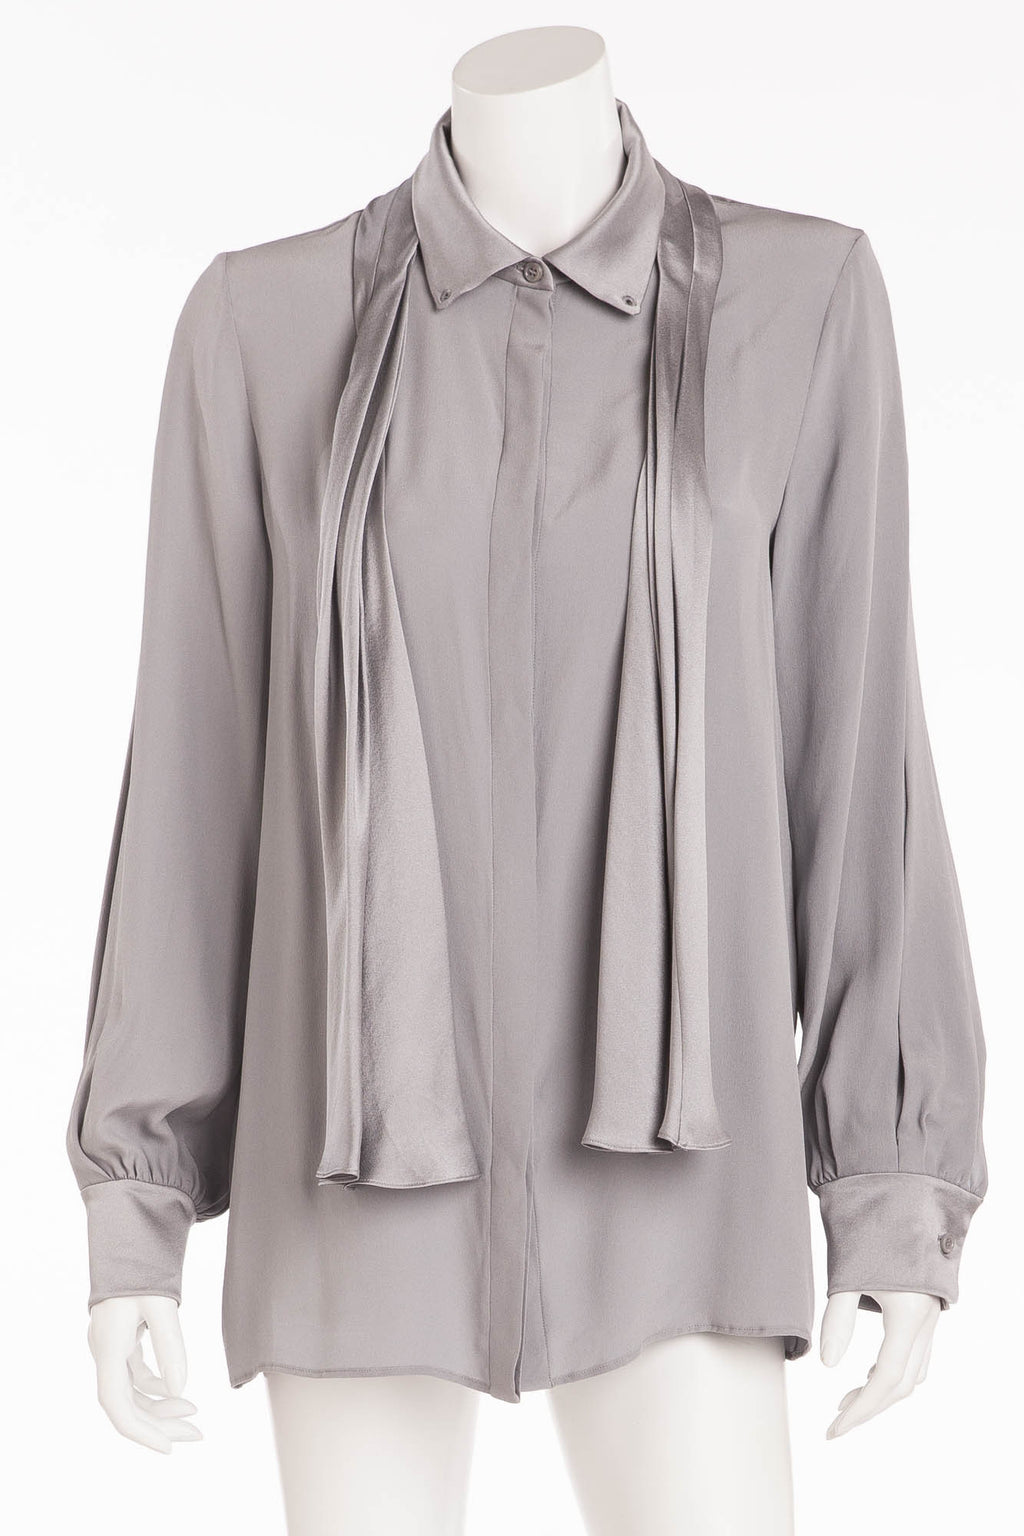 Chloe - Light Gray Blue Button Up Long Sleeve Shirt - FR 40